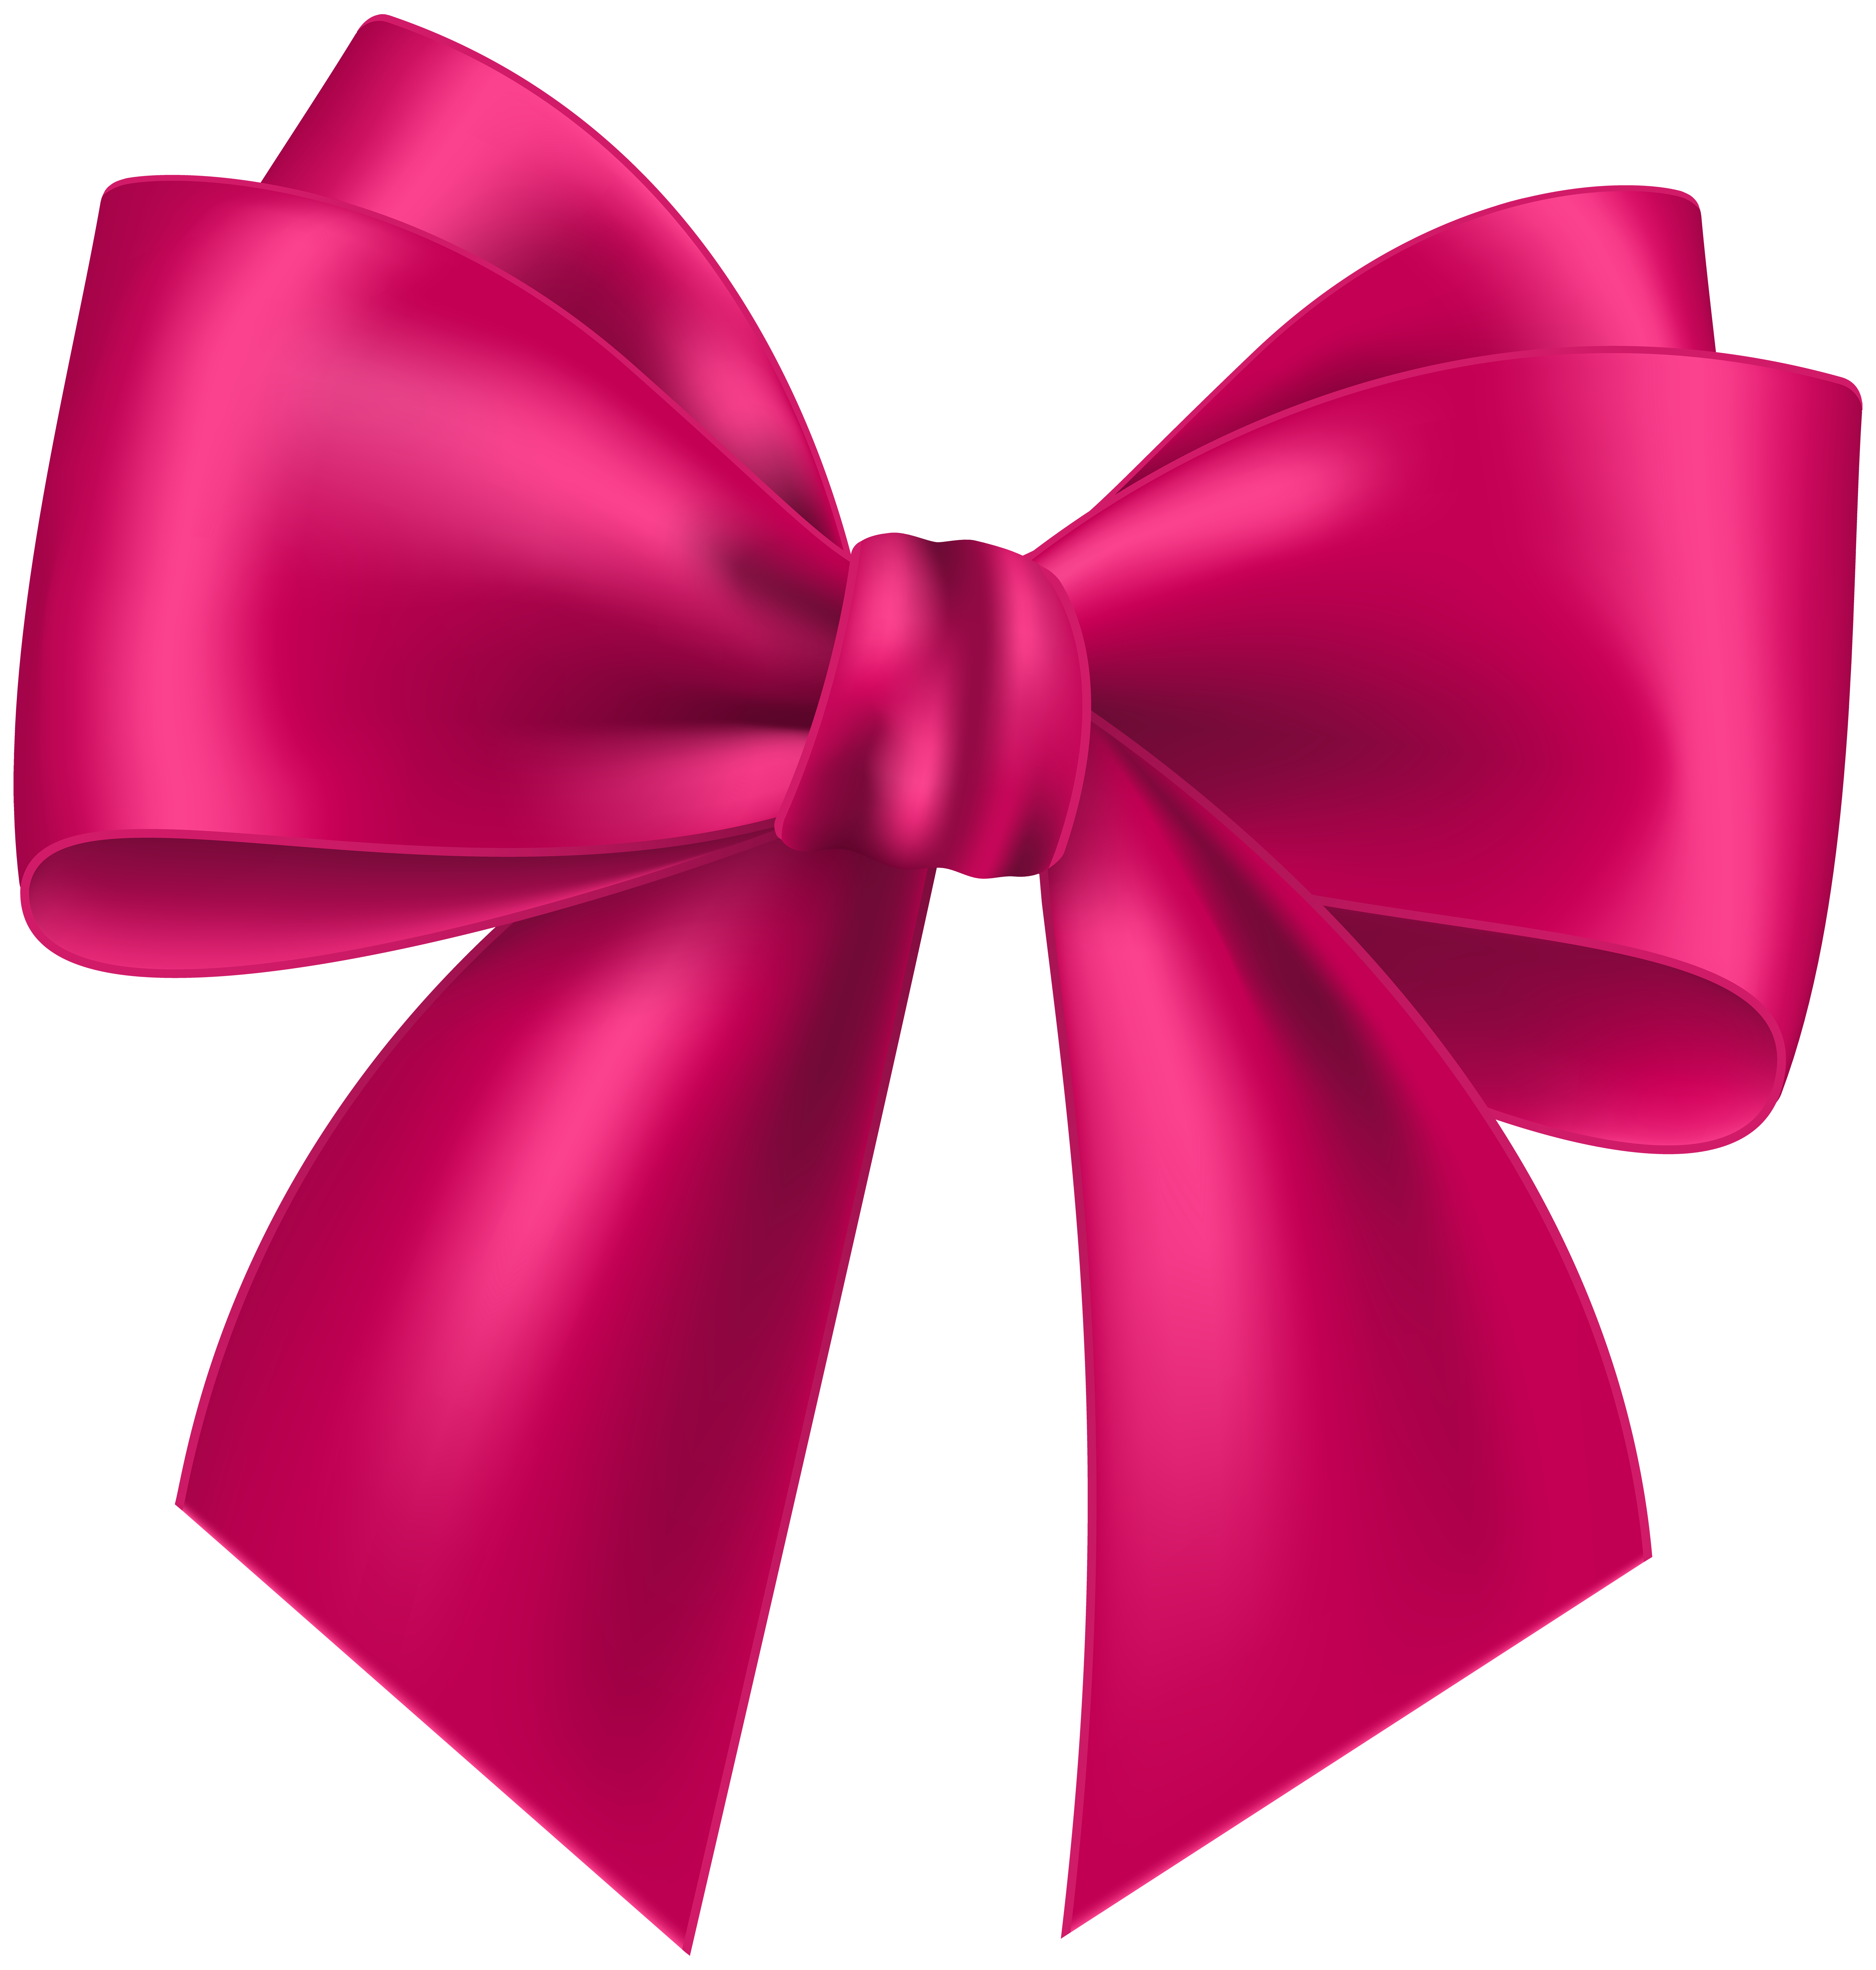 Pink Bow Transparent Clip Art Image | Gallery Yopriceville - High ...